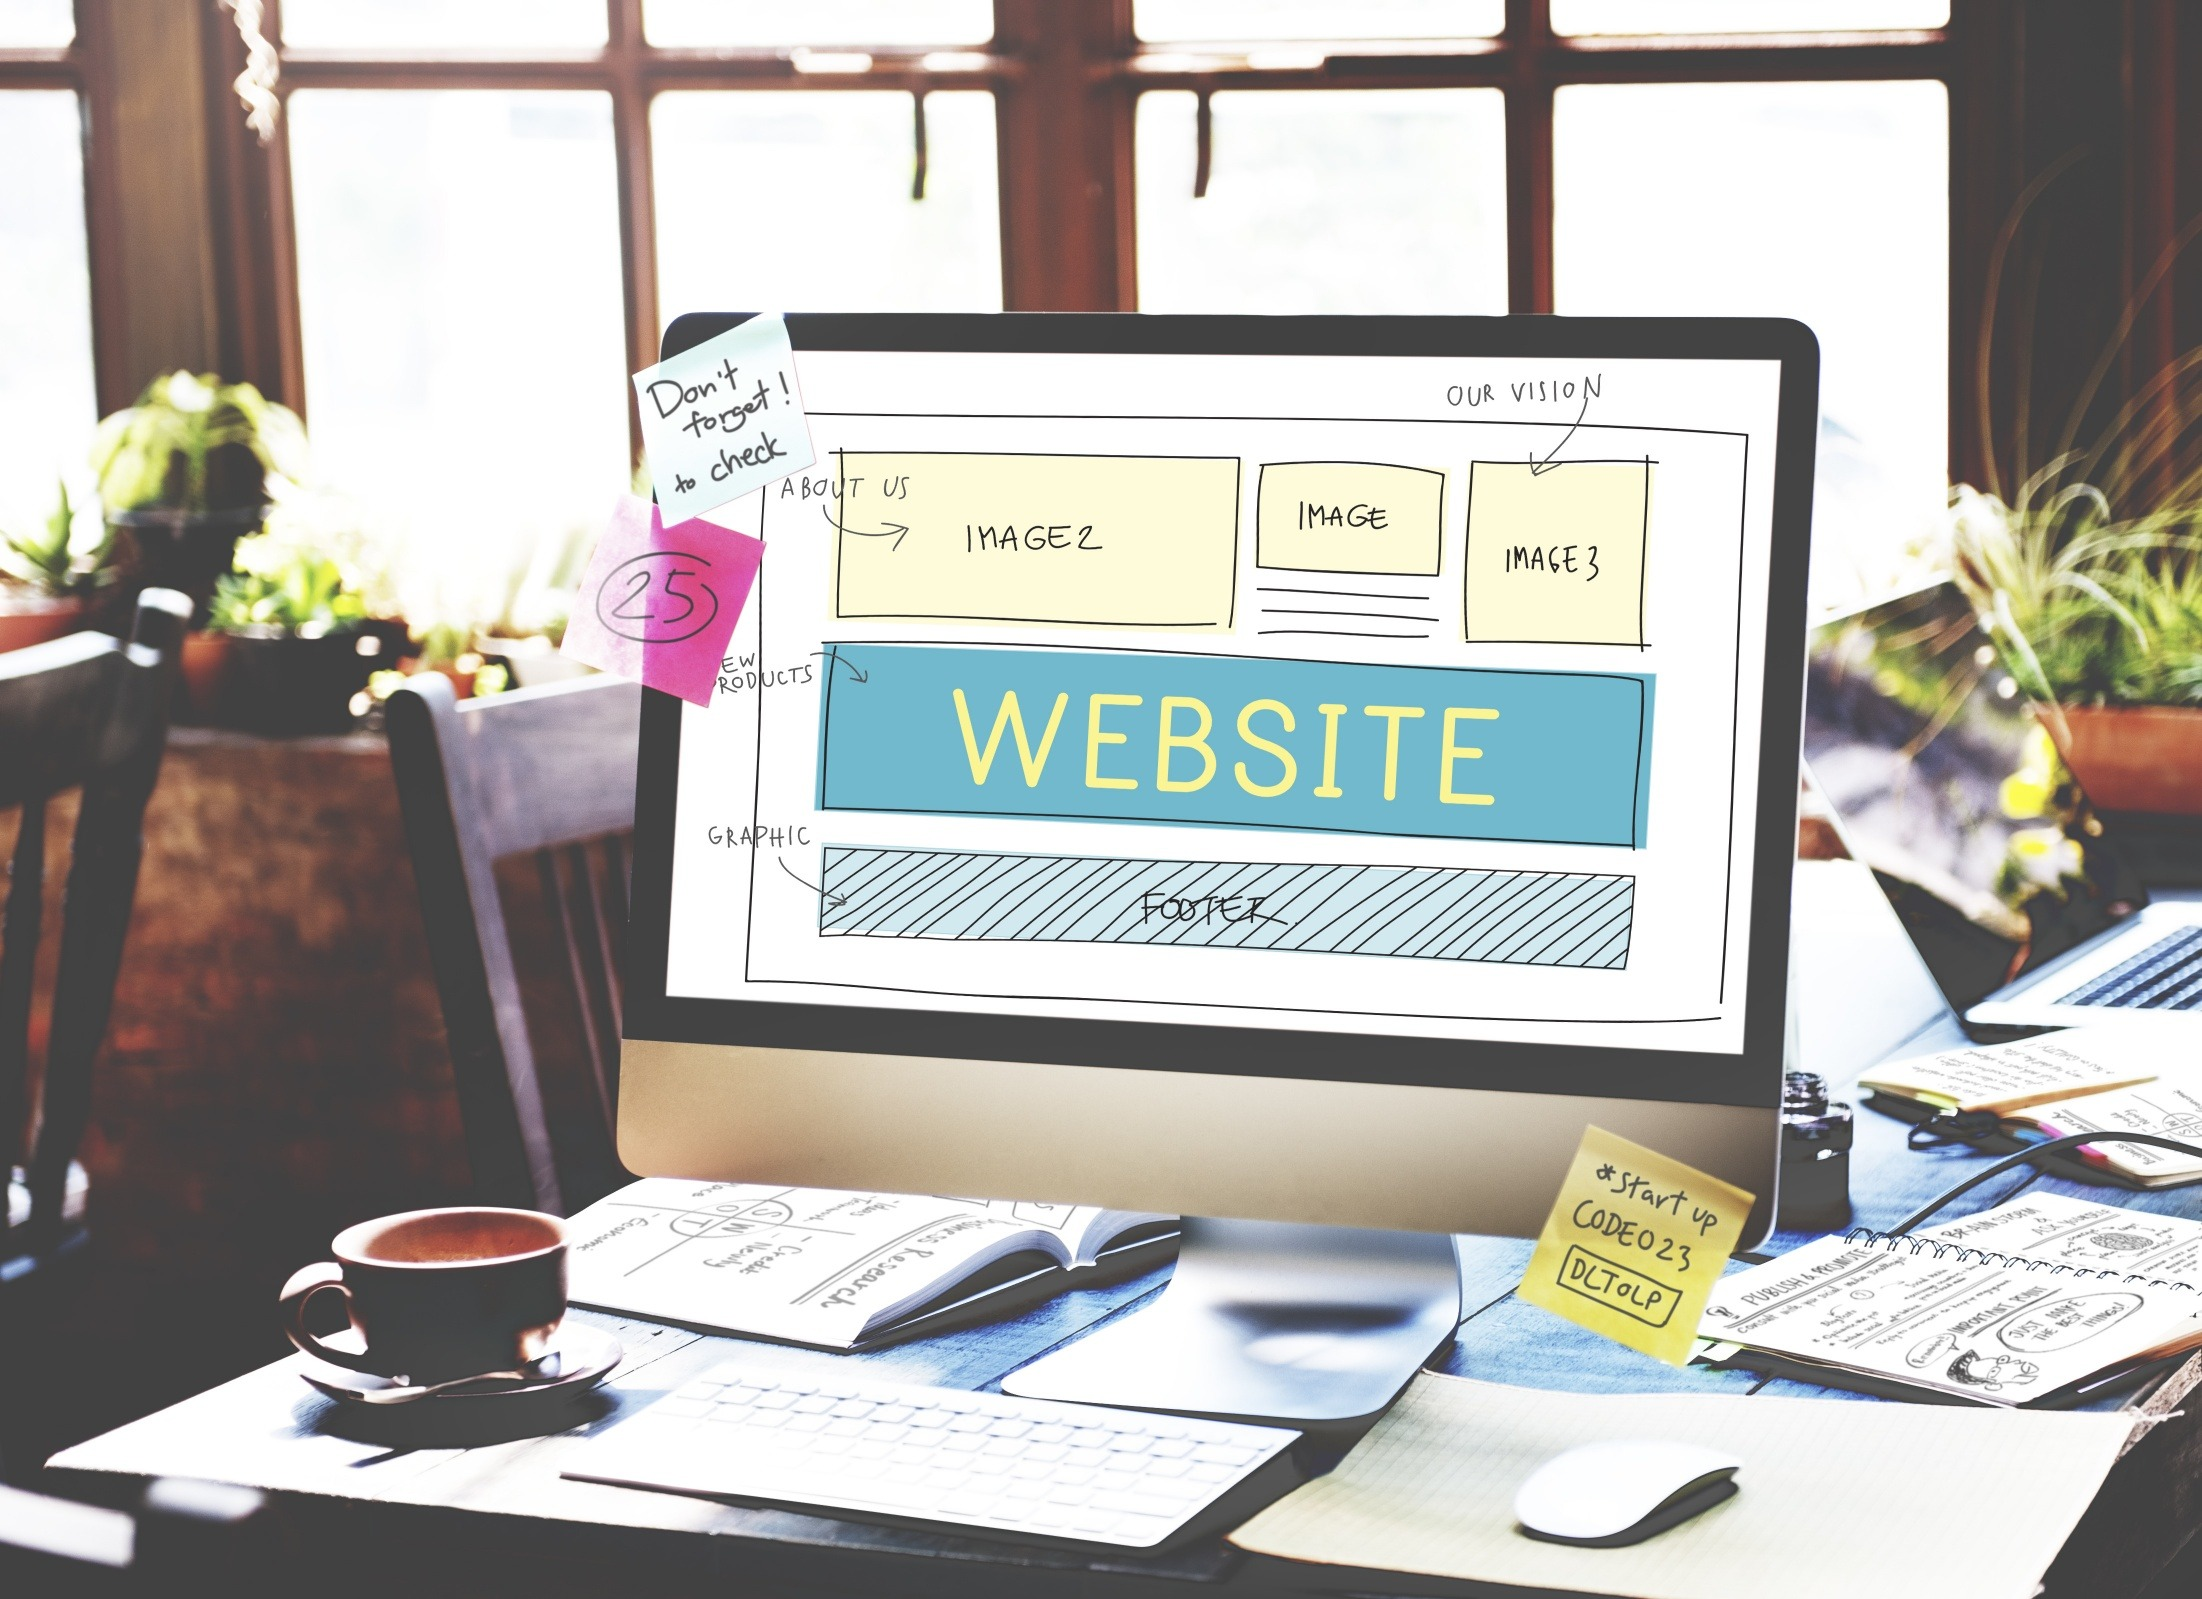 Should You Get a New Website or Just Update the Old One? 5 Signs To Look For.